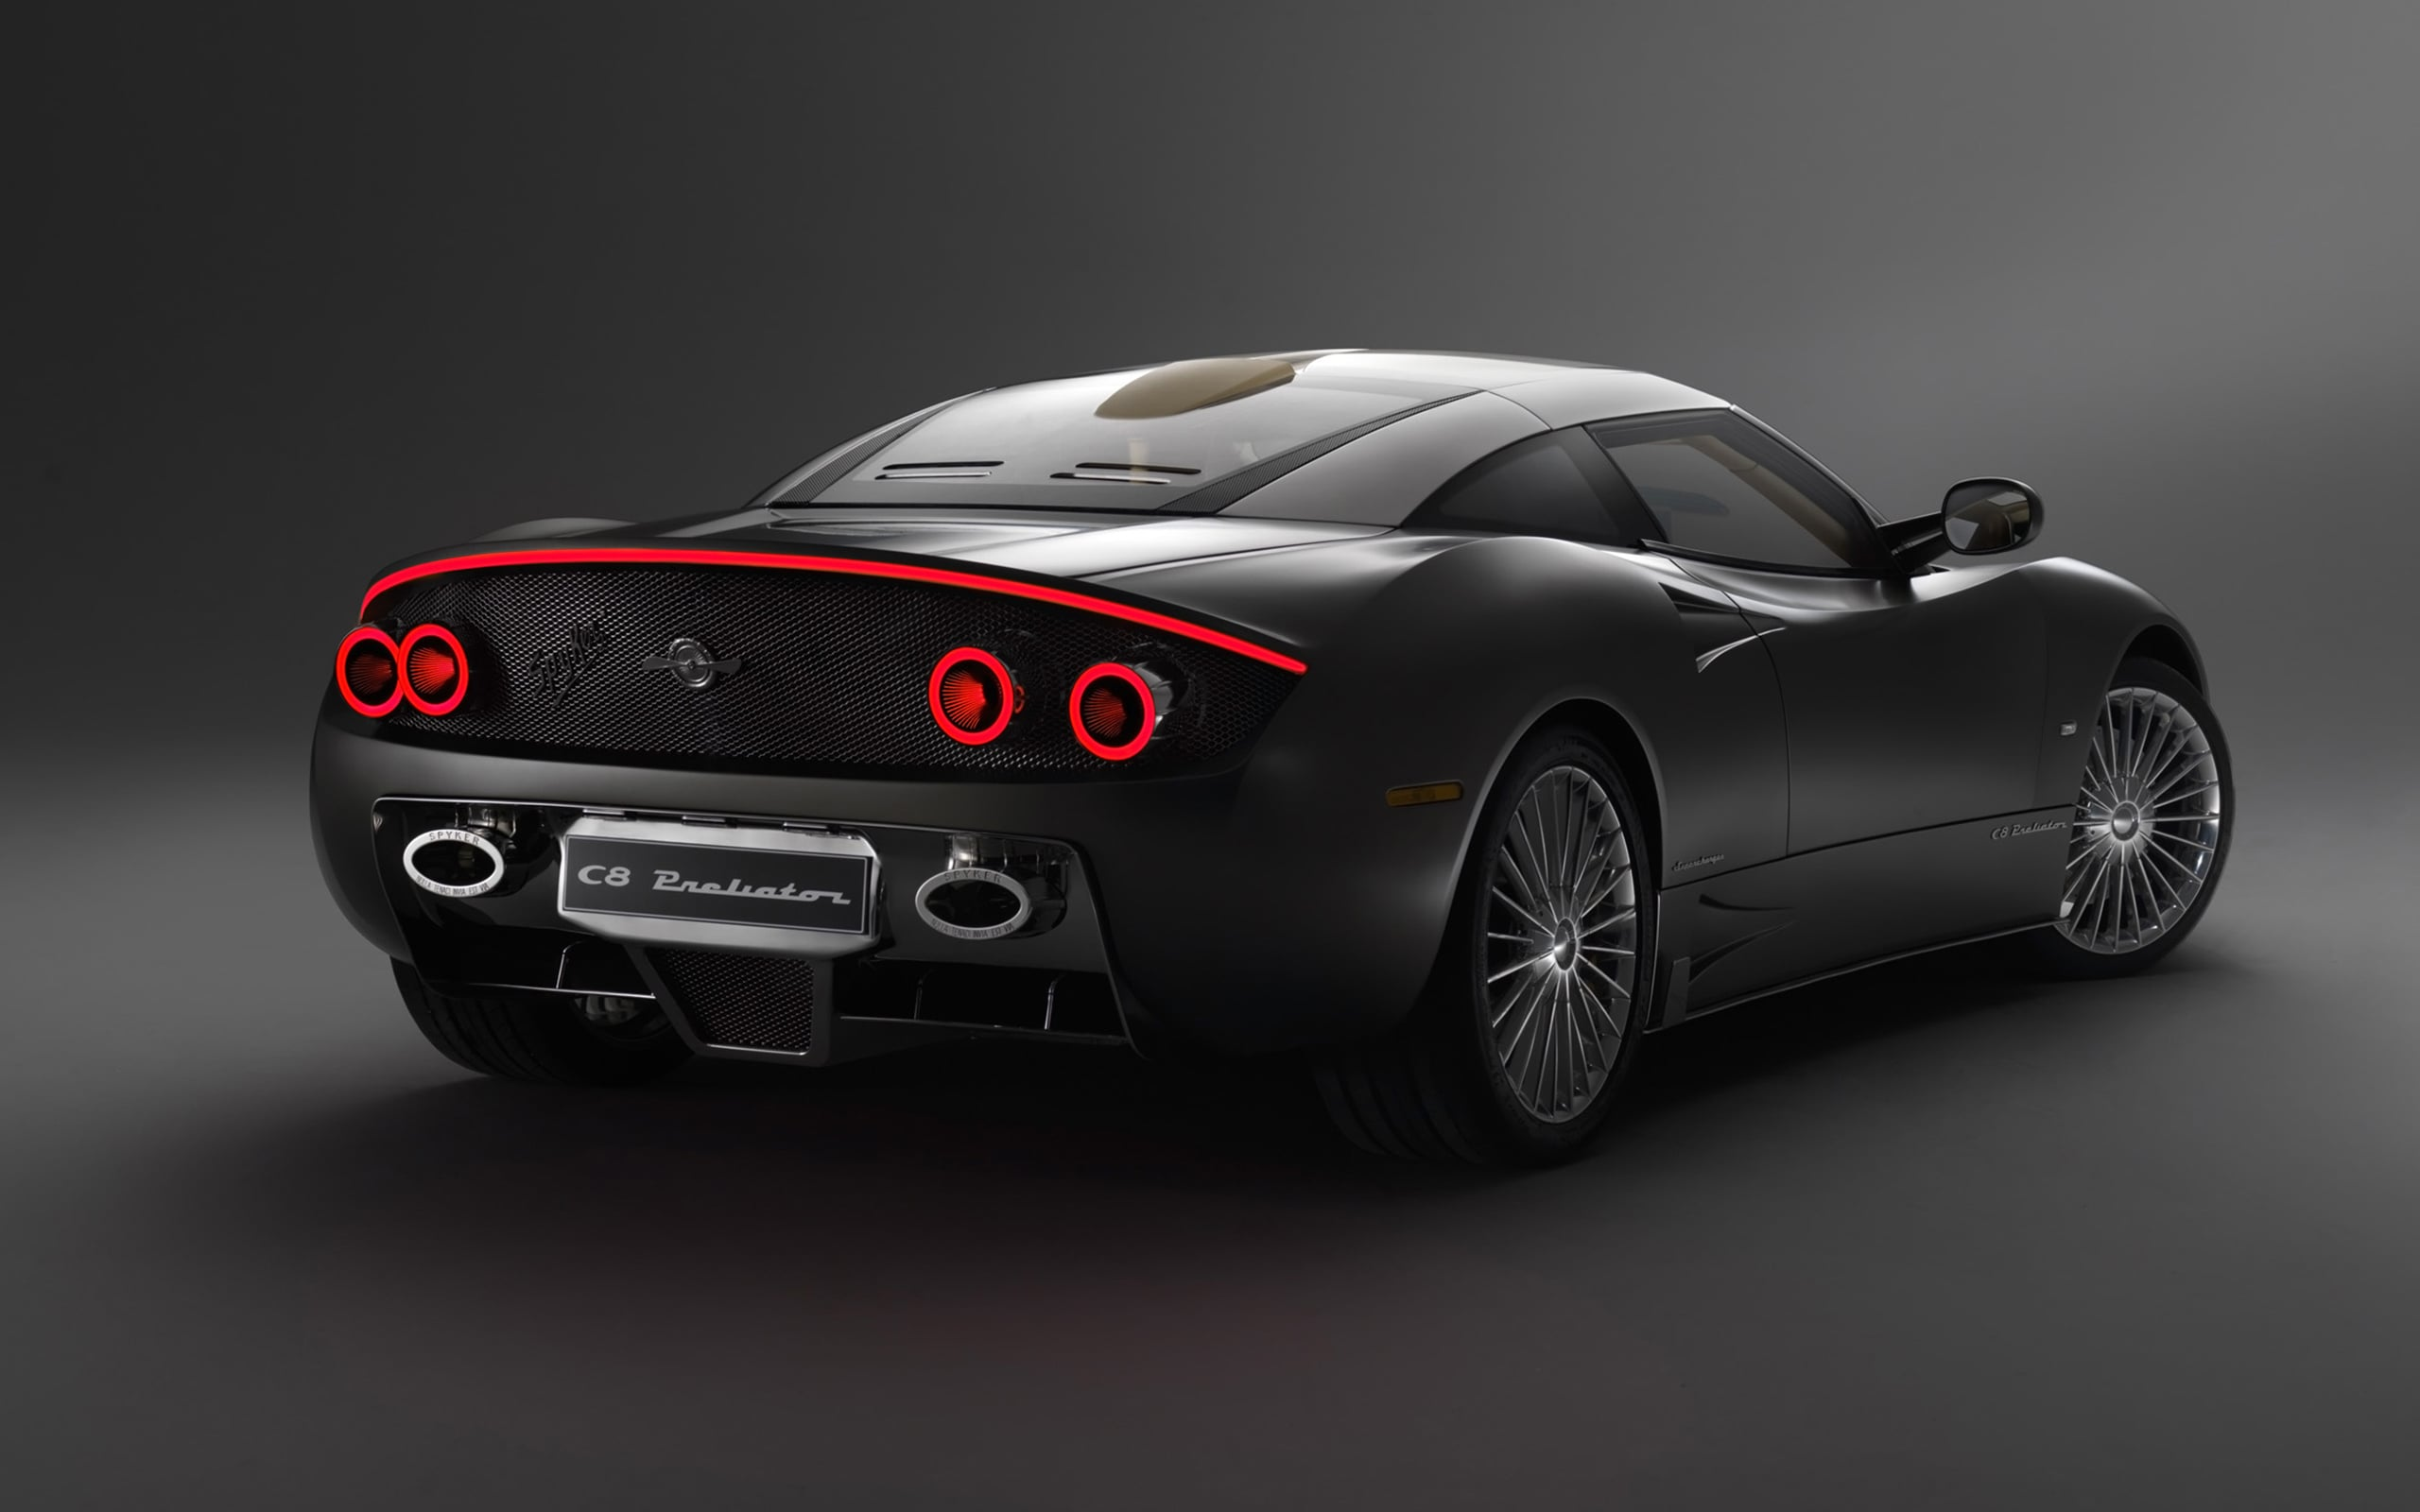 2016 Spyker C8 Preliator rear bumper High Resolution wallpaper